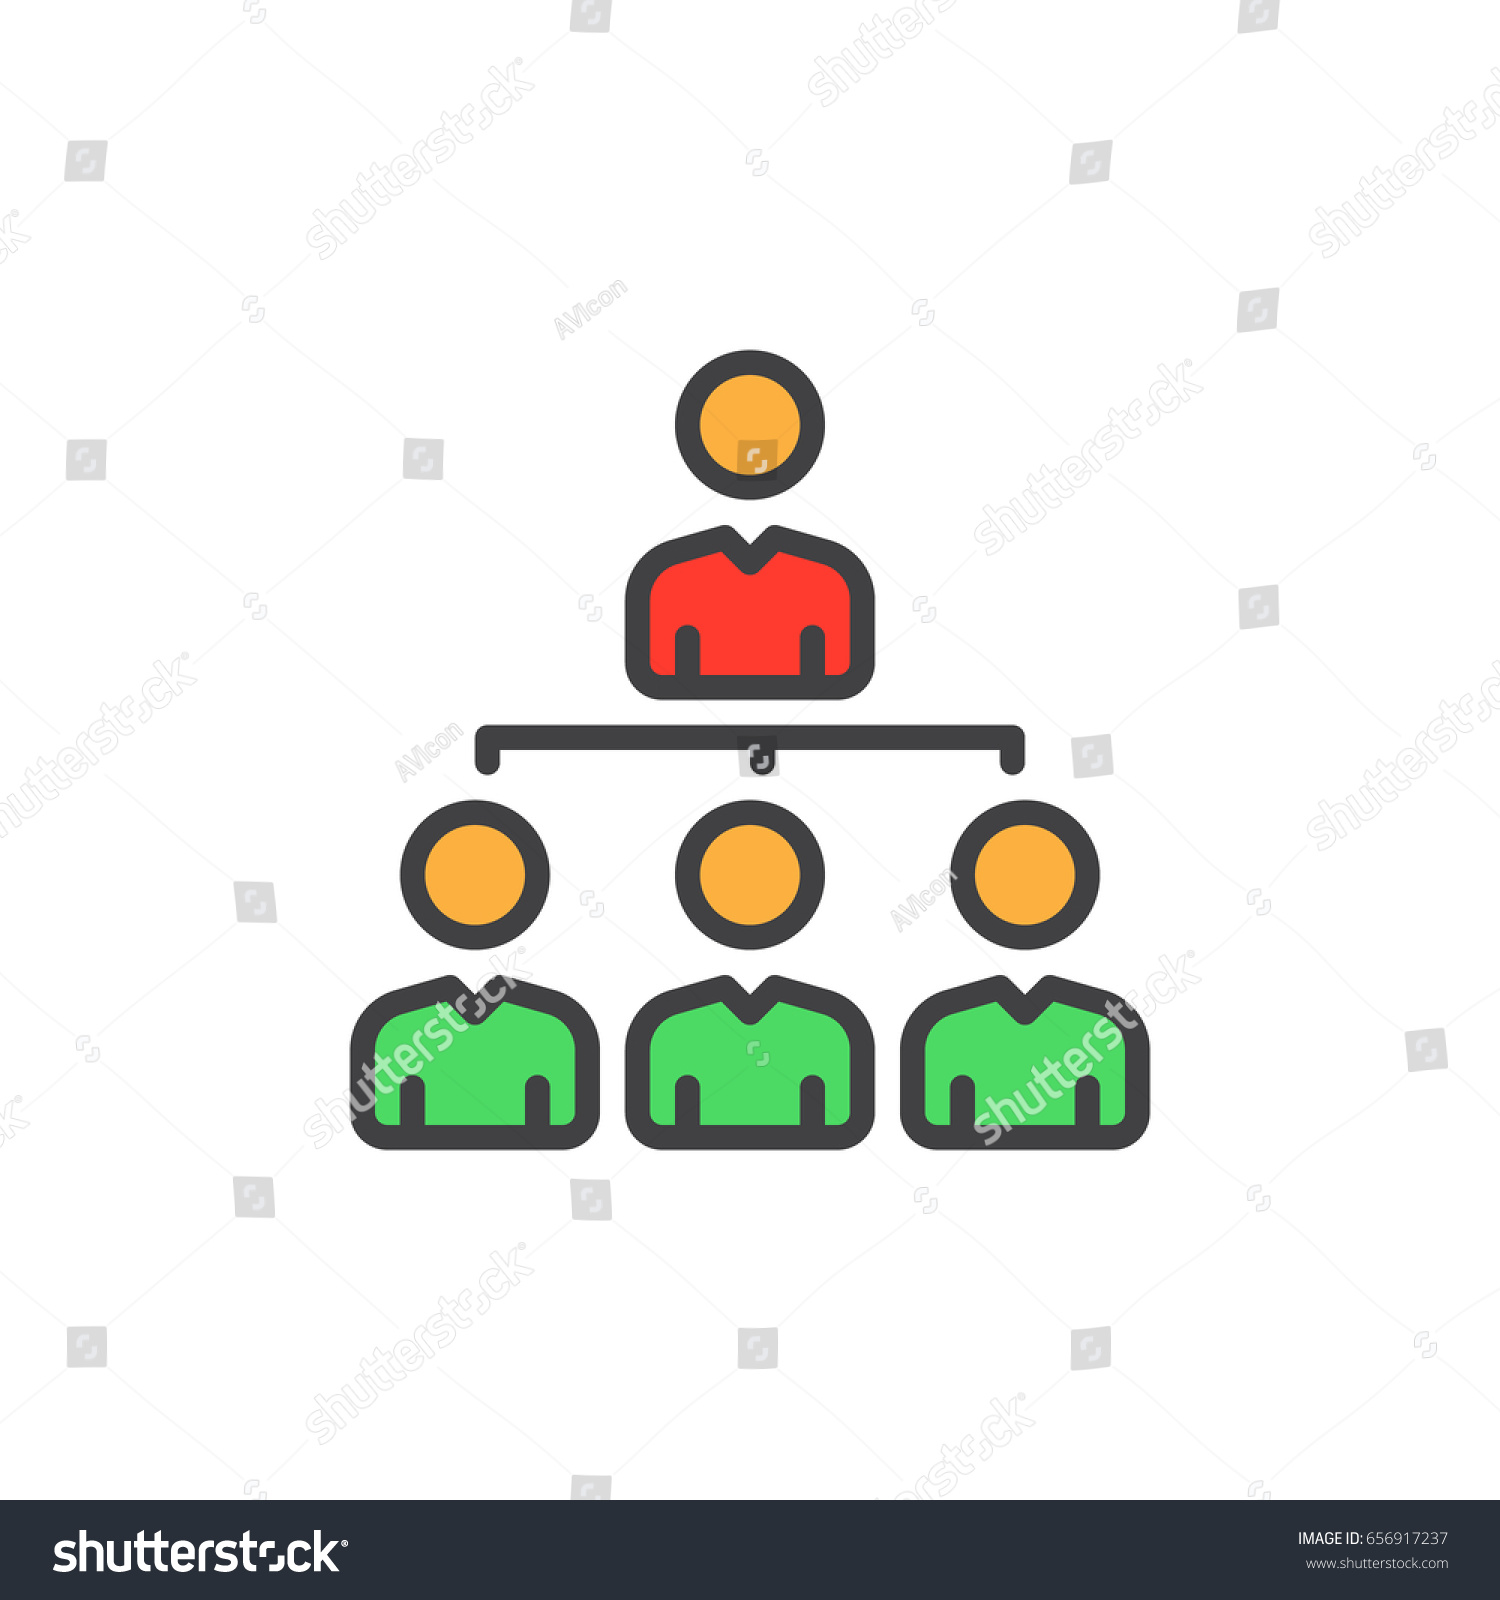 manager organization chart filled outline icon stock